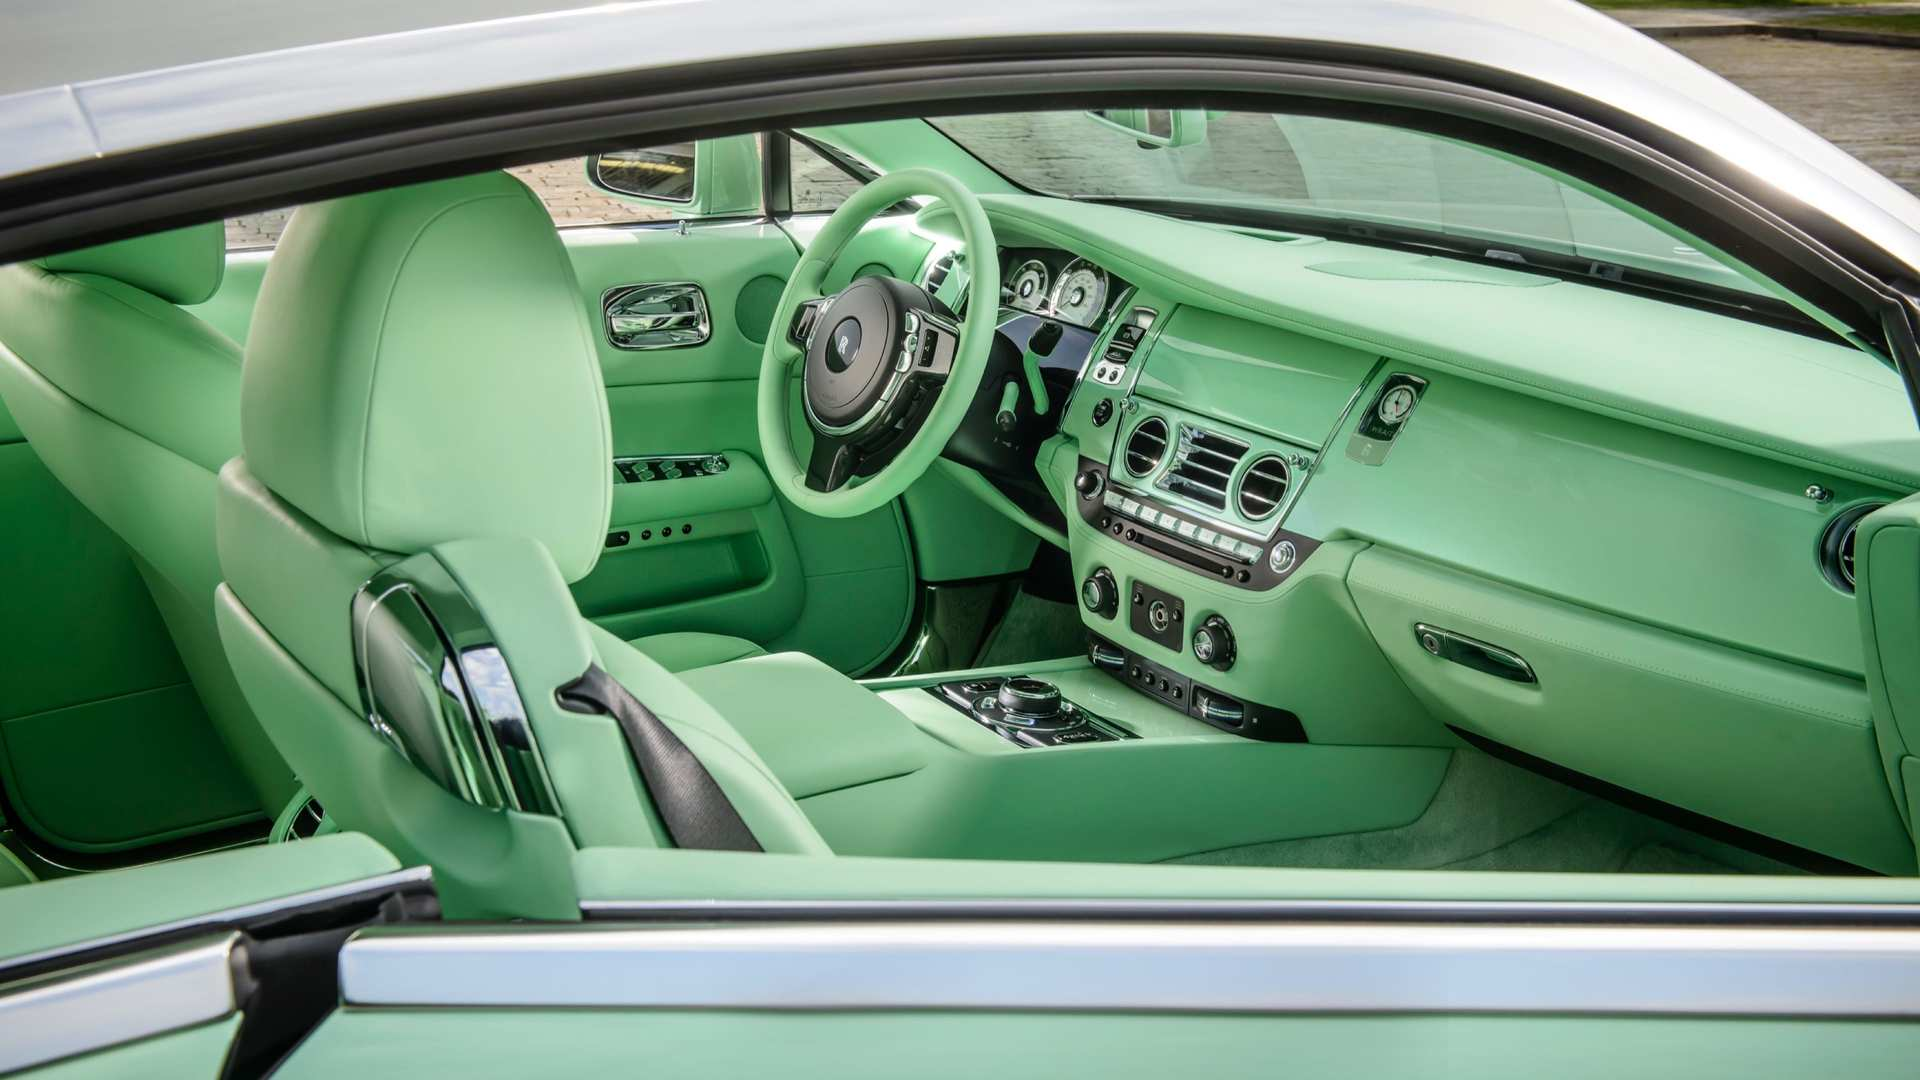 Rolls-Royce Wraith - the Michael Fux model, shot of front interior in lime Green